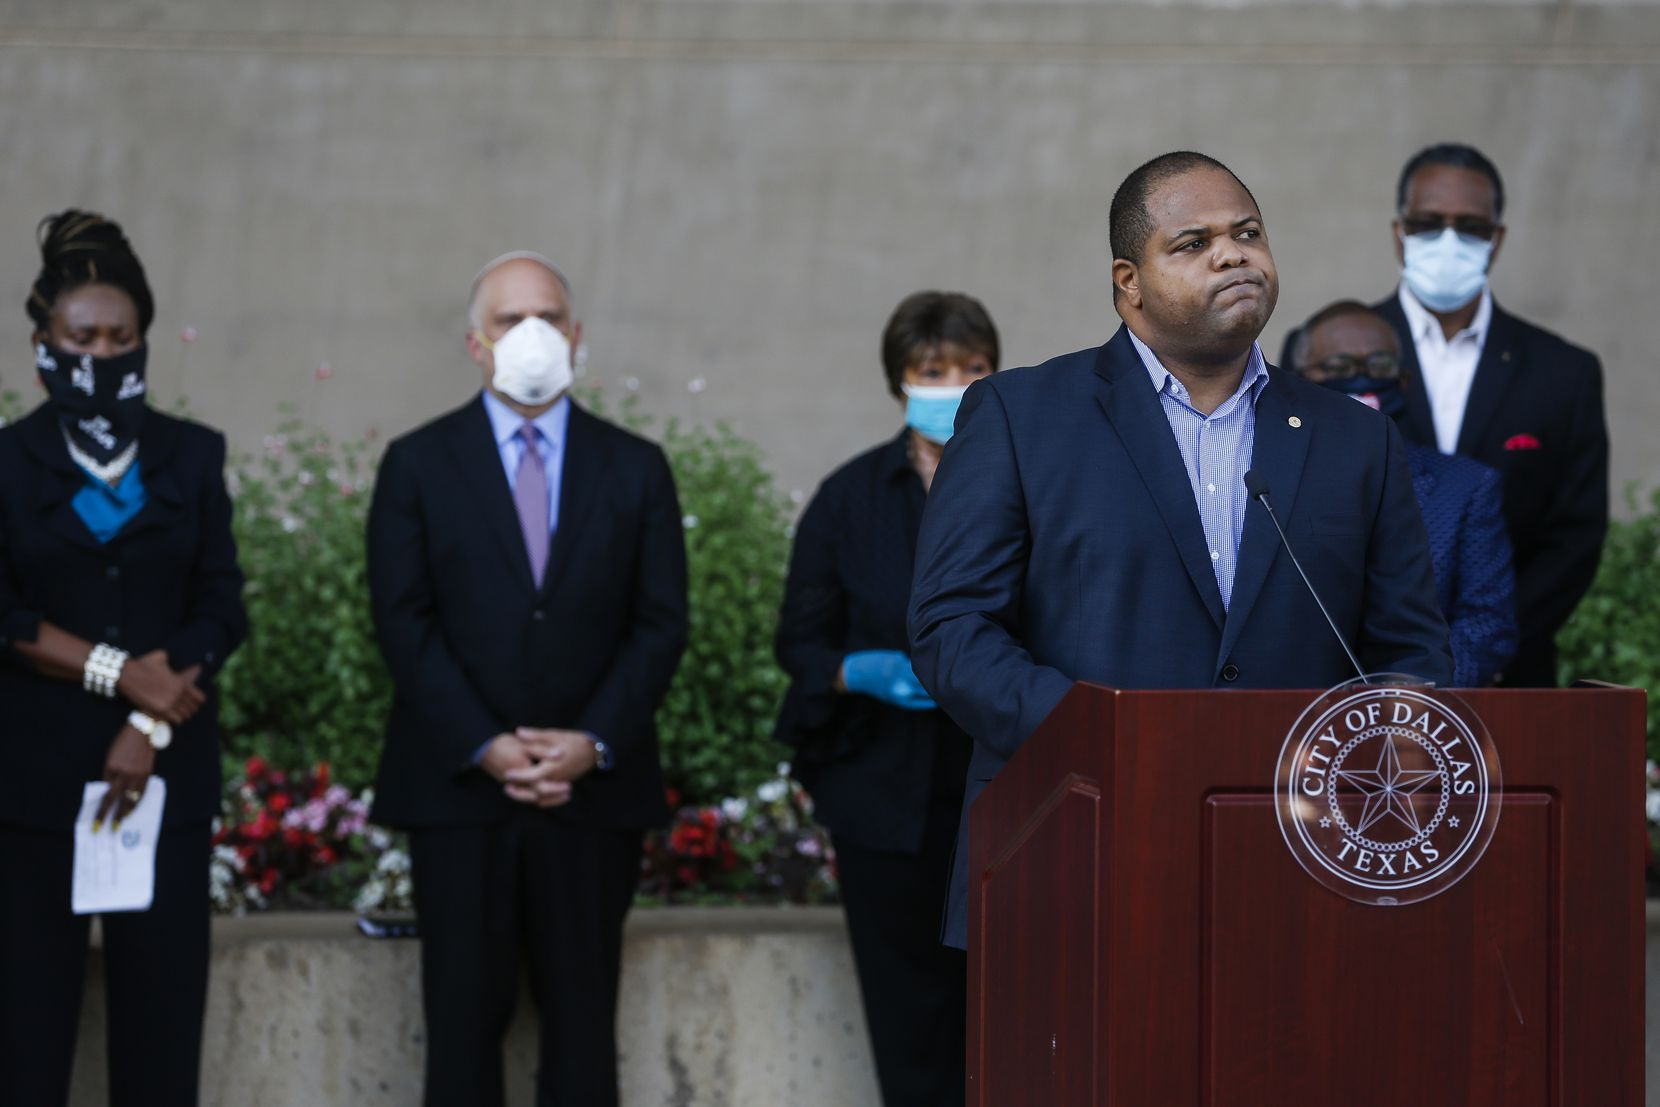 Dallas Mayor Eric Johnson speaks during a memorial  for George Floyd at City Hall on Friday.